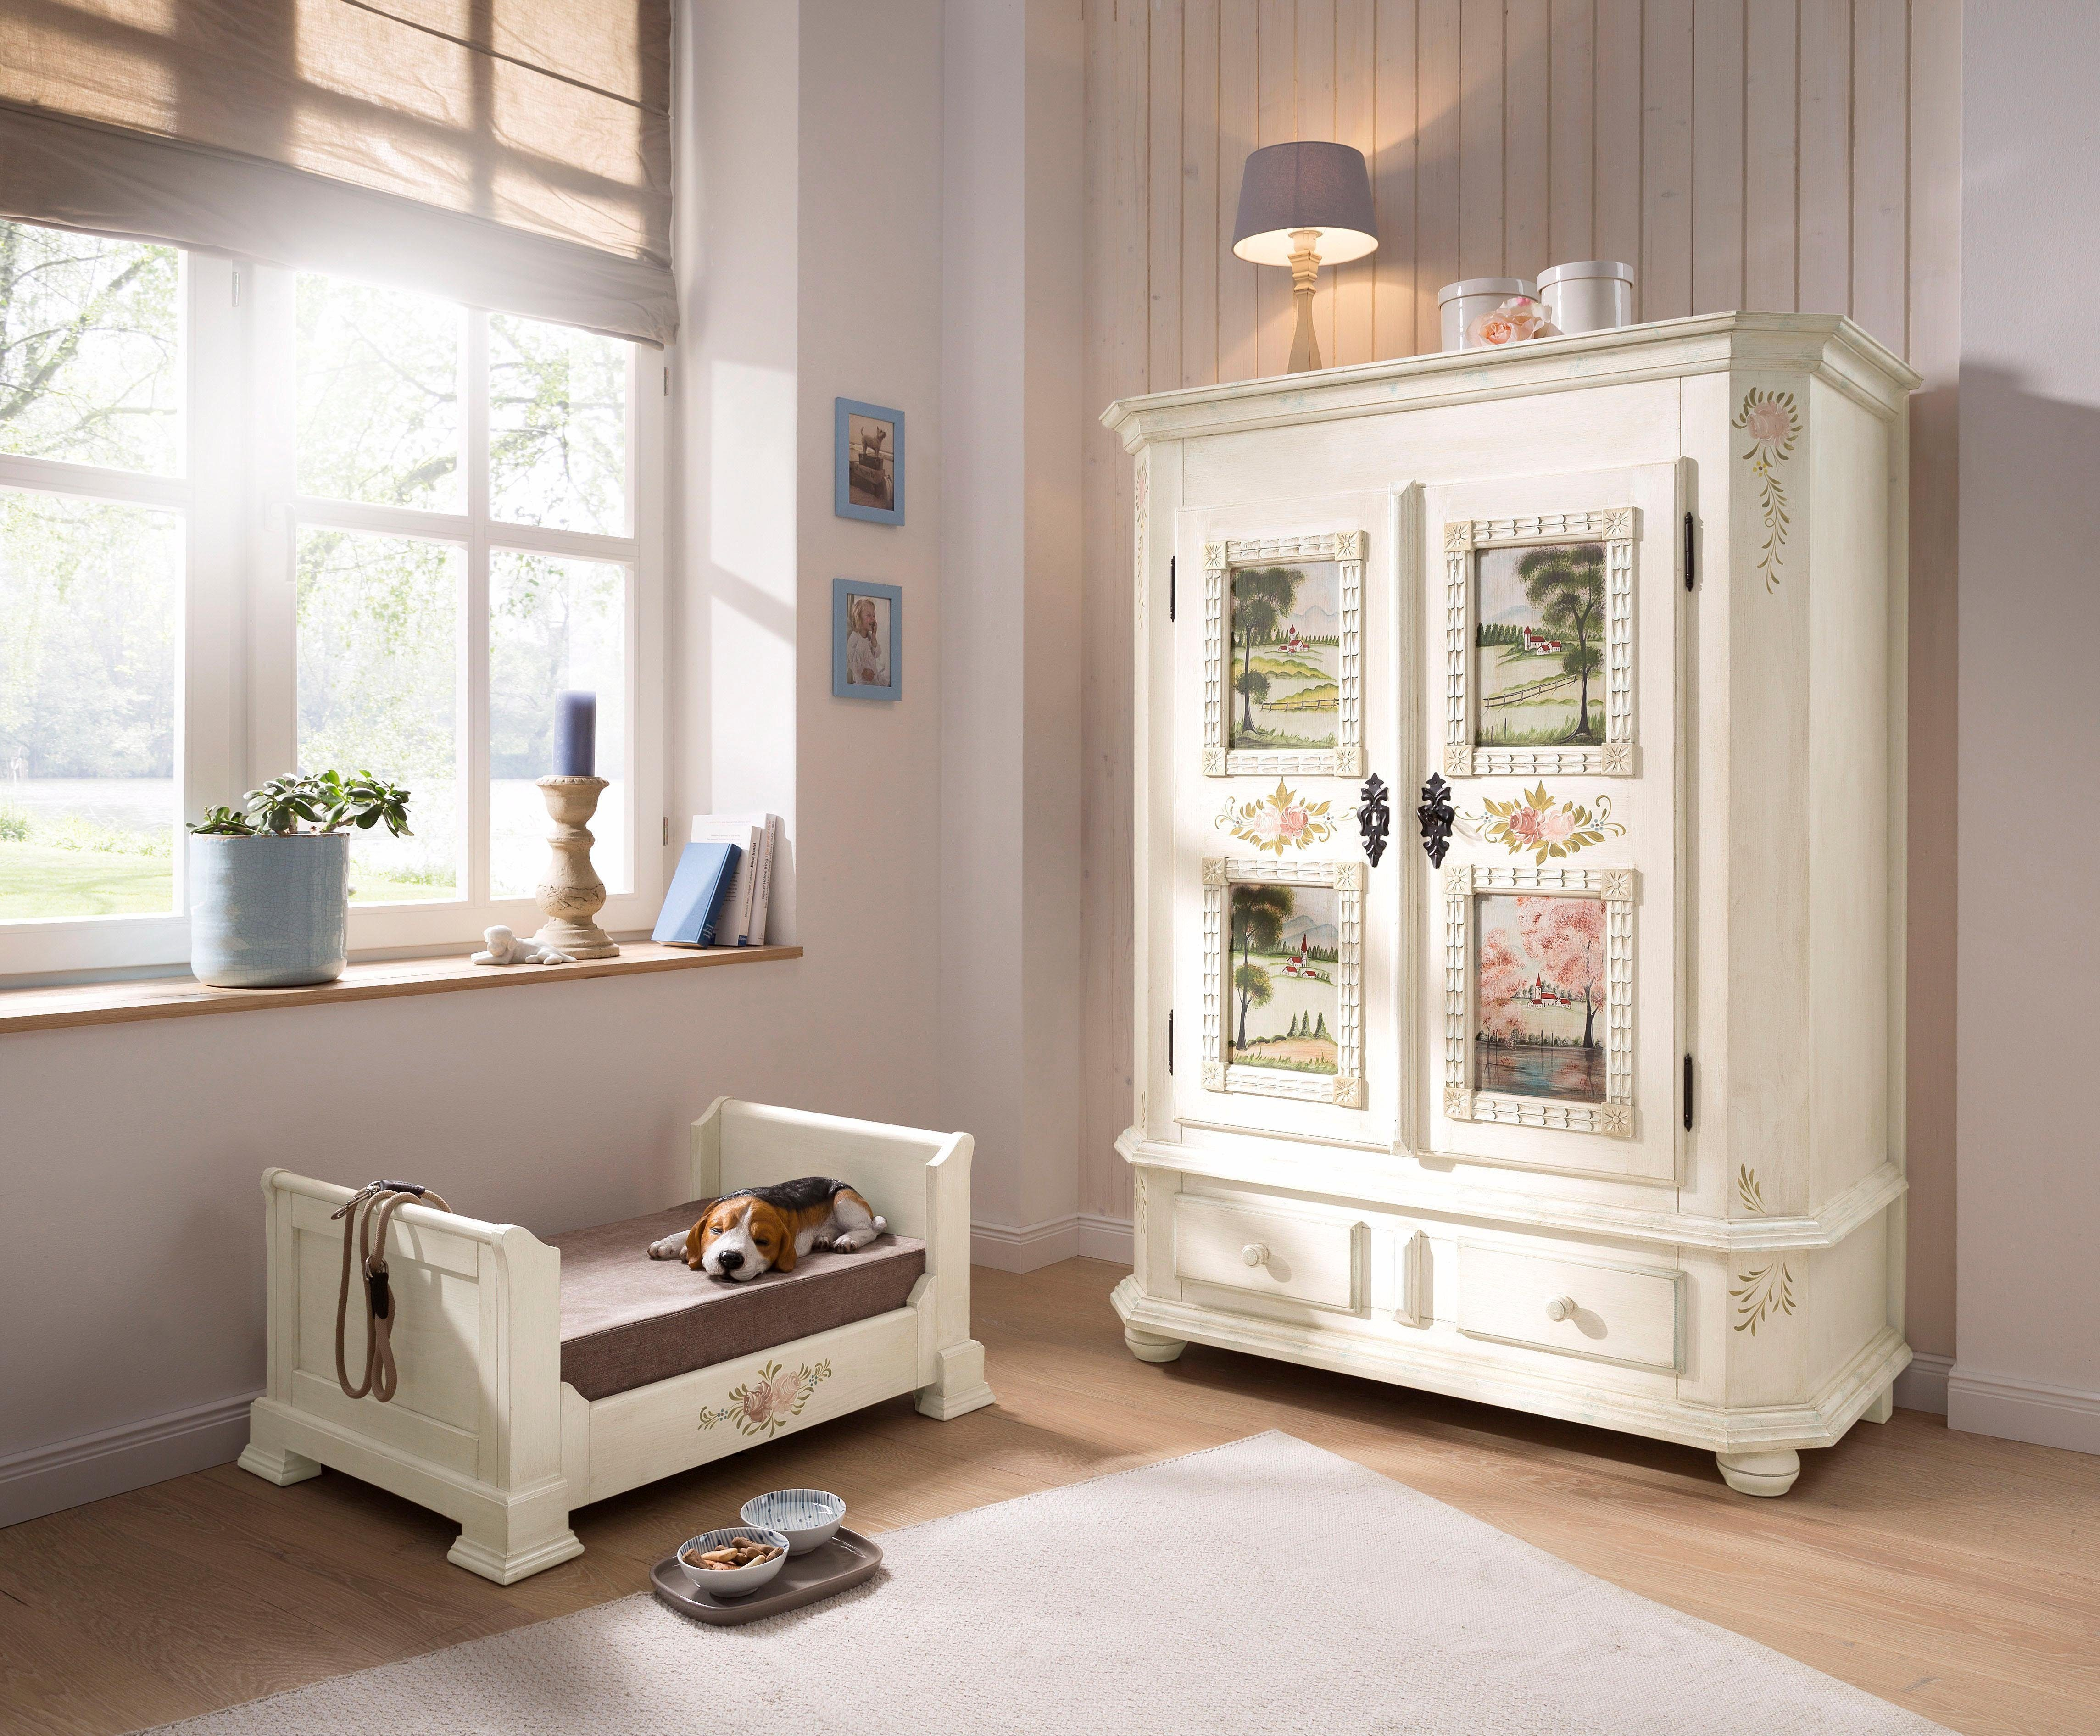 Premium Collection By Home Affaire Kast Sophia Breedte